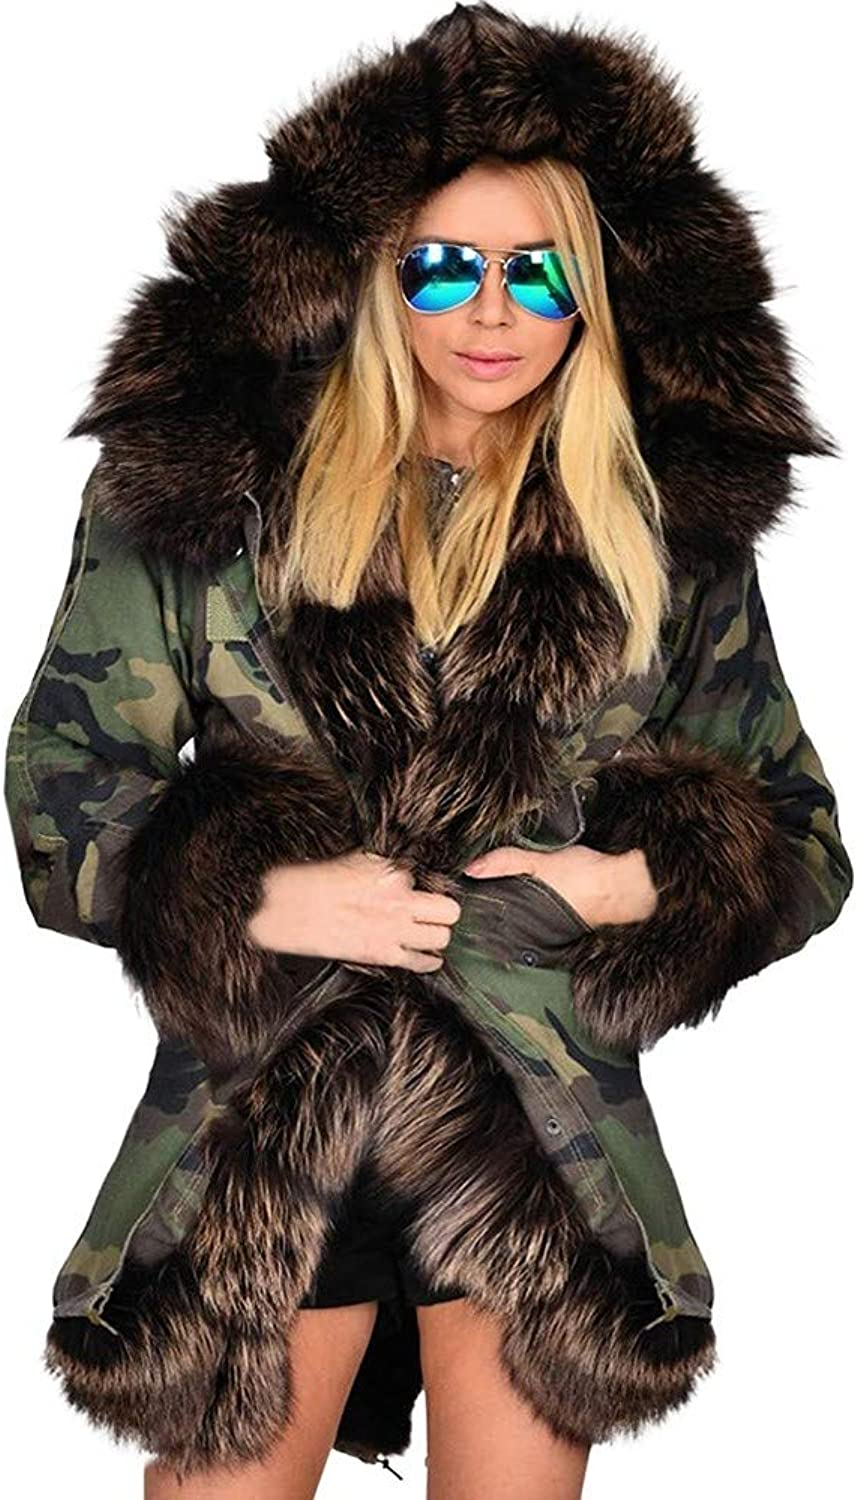 DaySeventh Clothes Womens Faux Fur Winter Jacket Parka Hooded Coat Fishtail Long